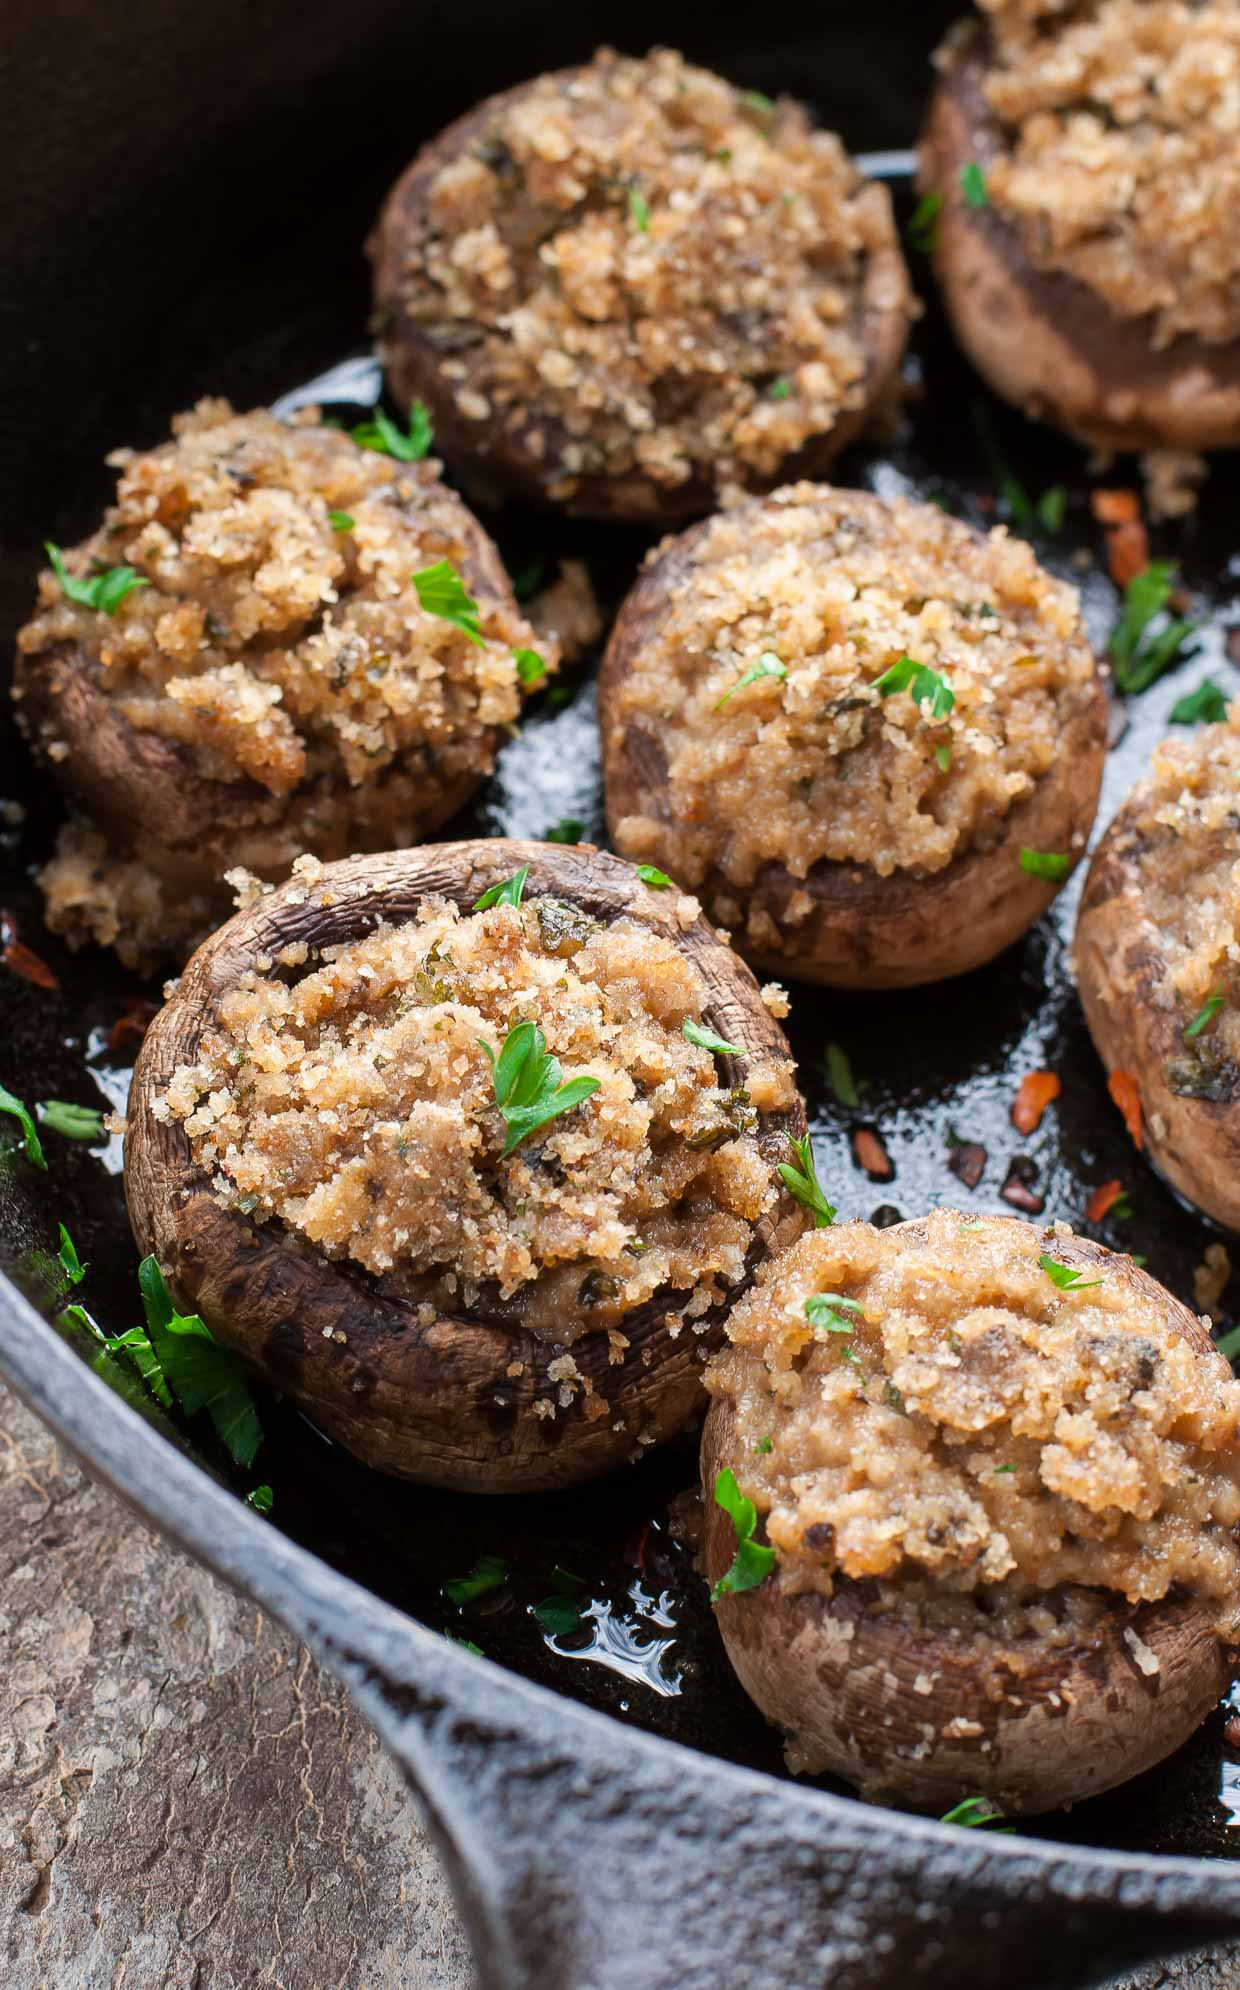 These classic stuffed mushrooms are a total crowd pleaser!